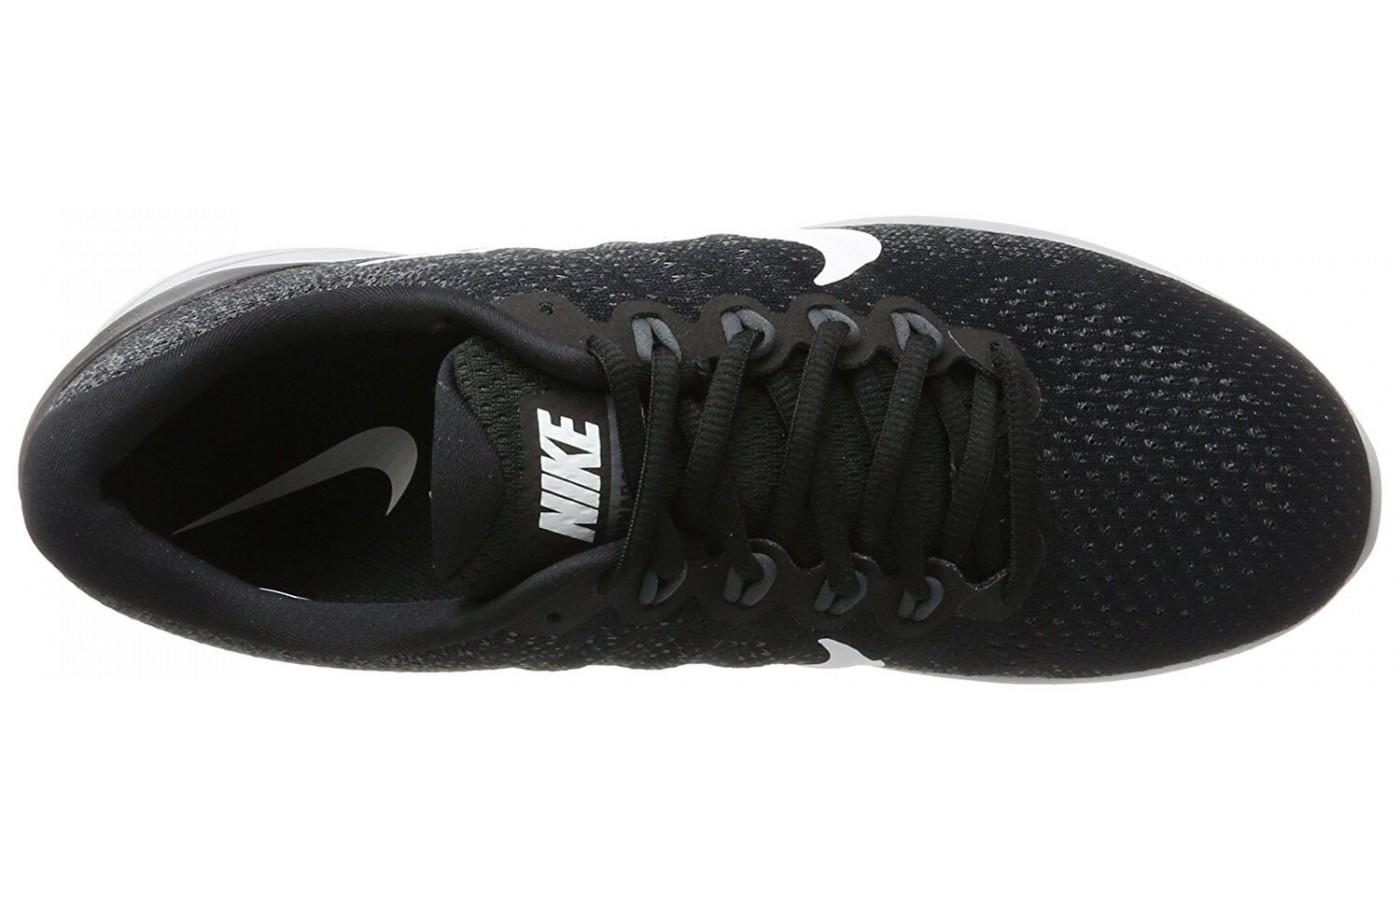 finest selection d9ad2 68634 ... the upper of the Nike Lunarglide 9 is made of a highly breathable  jacquard mesh material ...